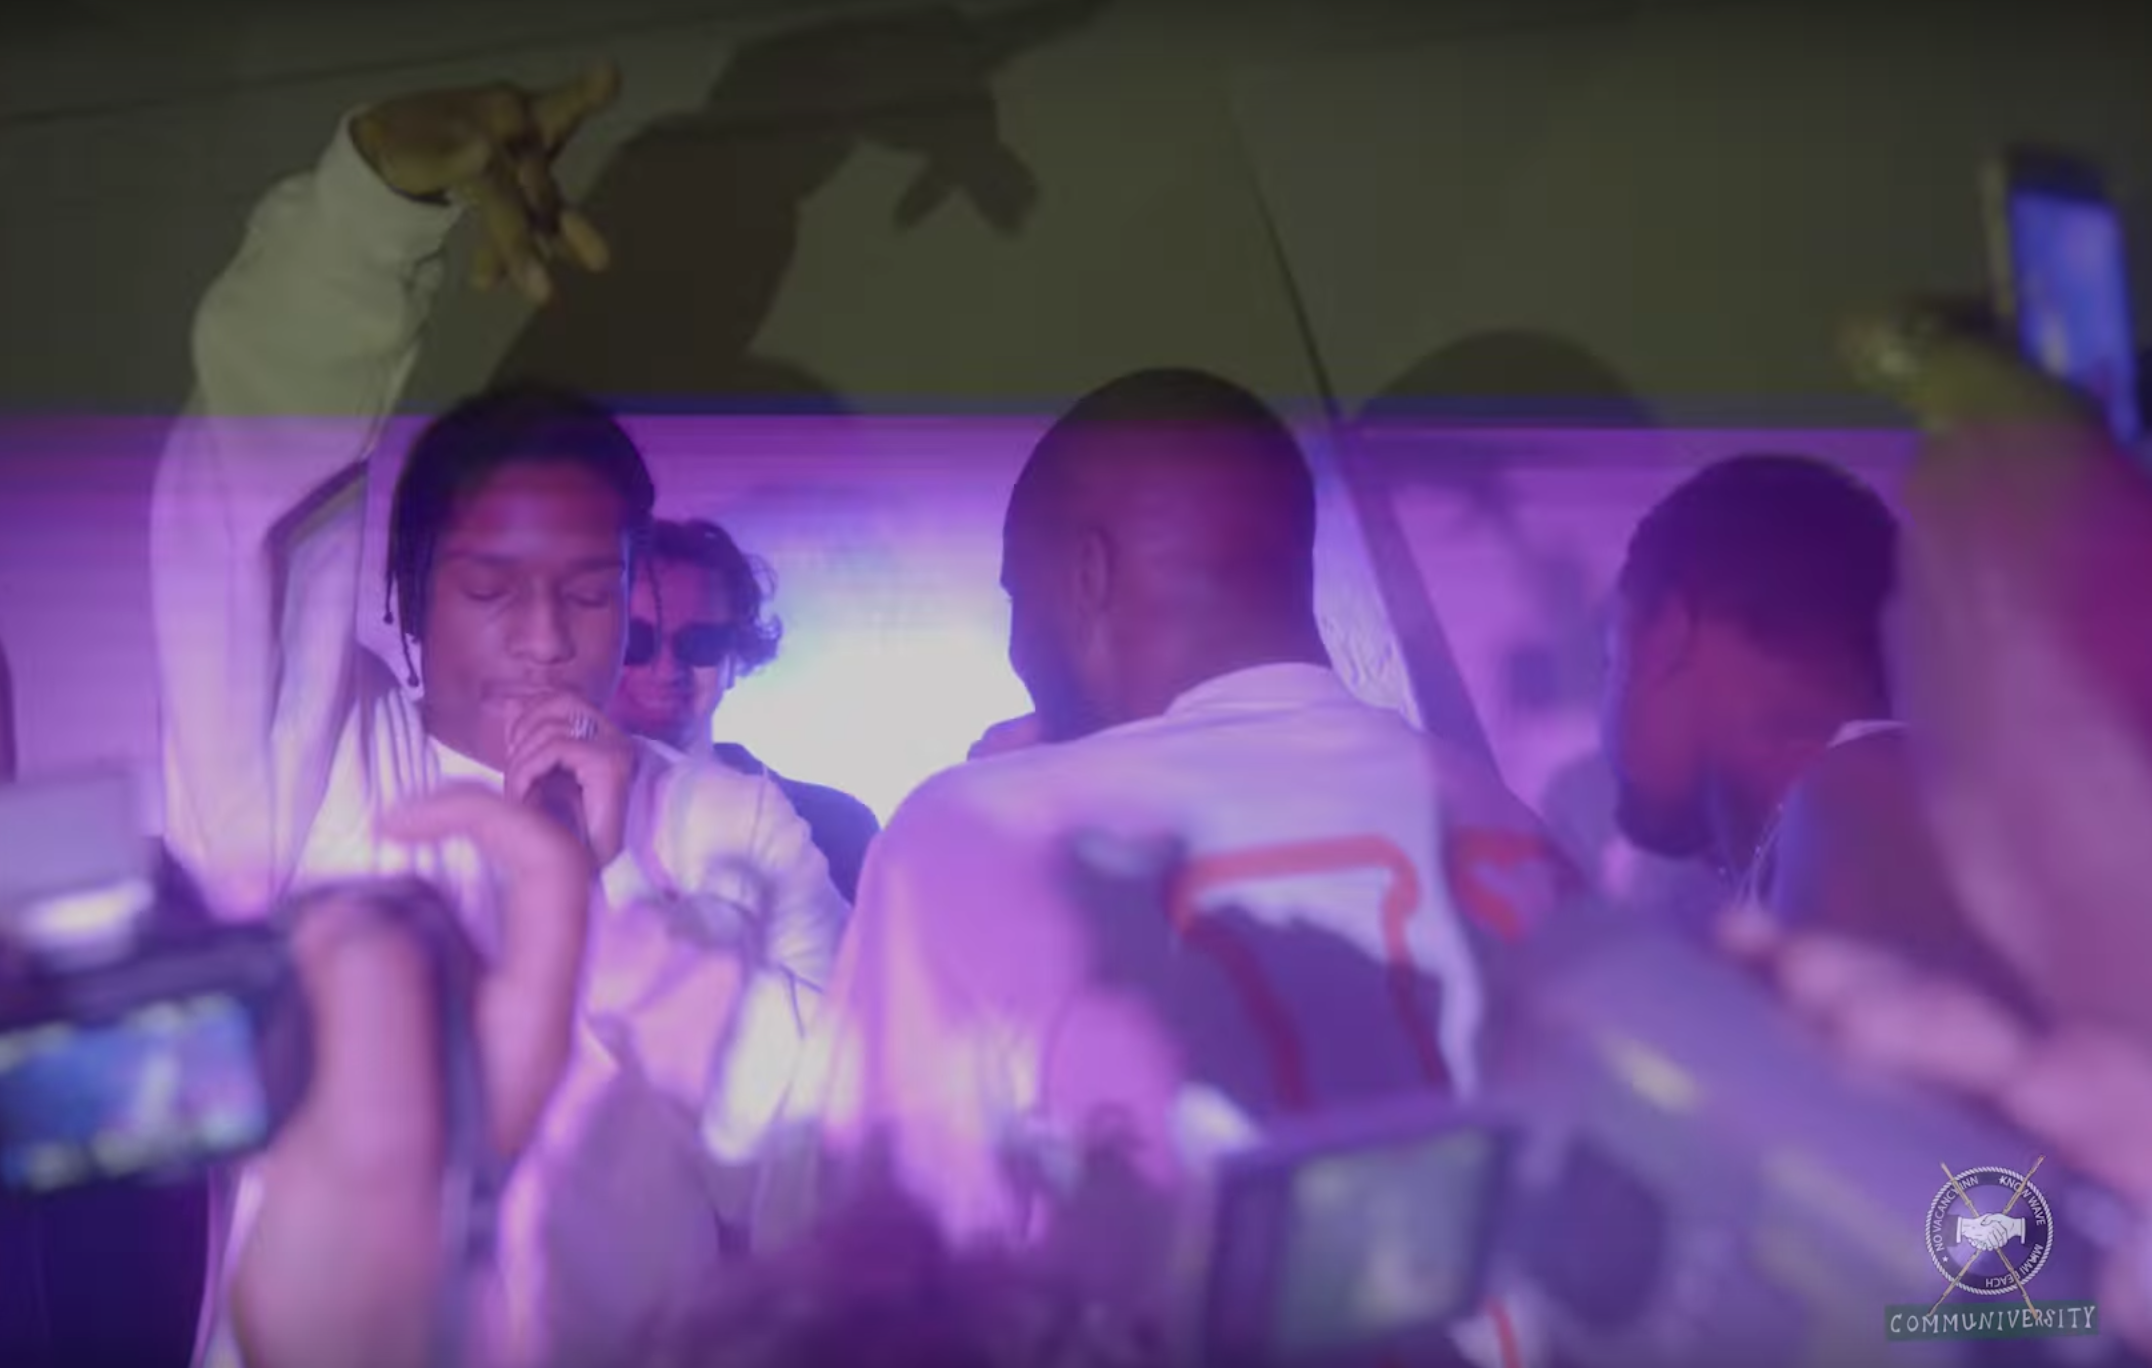 Grosse performance du A$AP MOB pendant l'Art Basel Miami